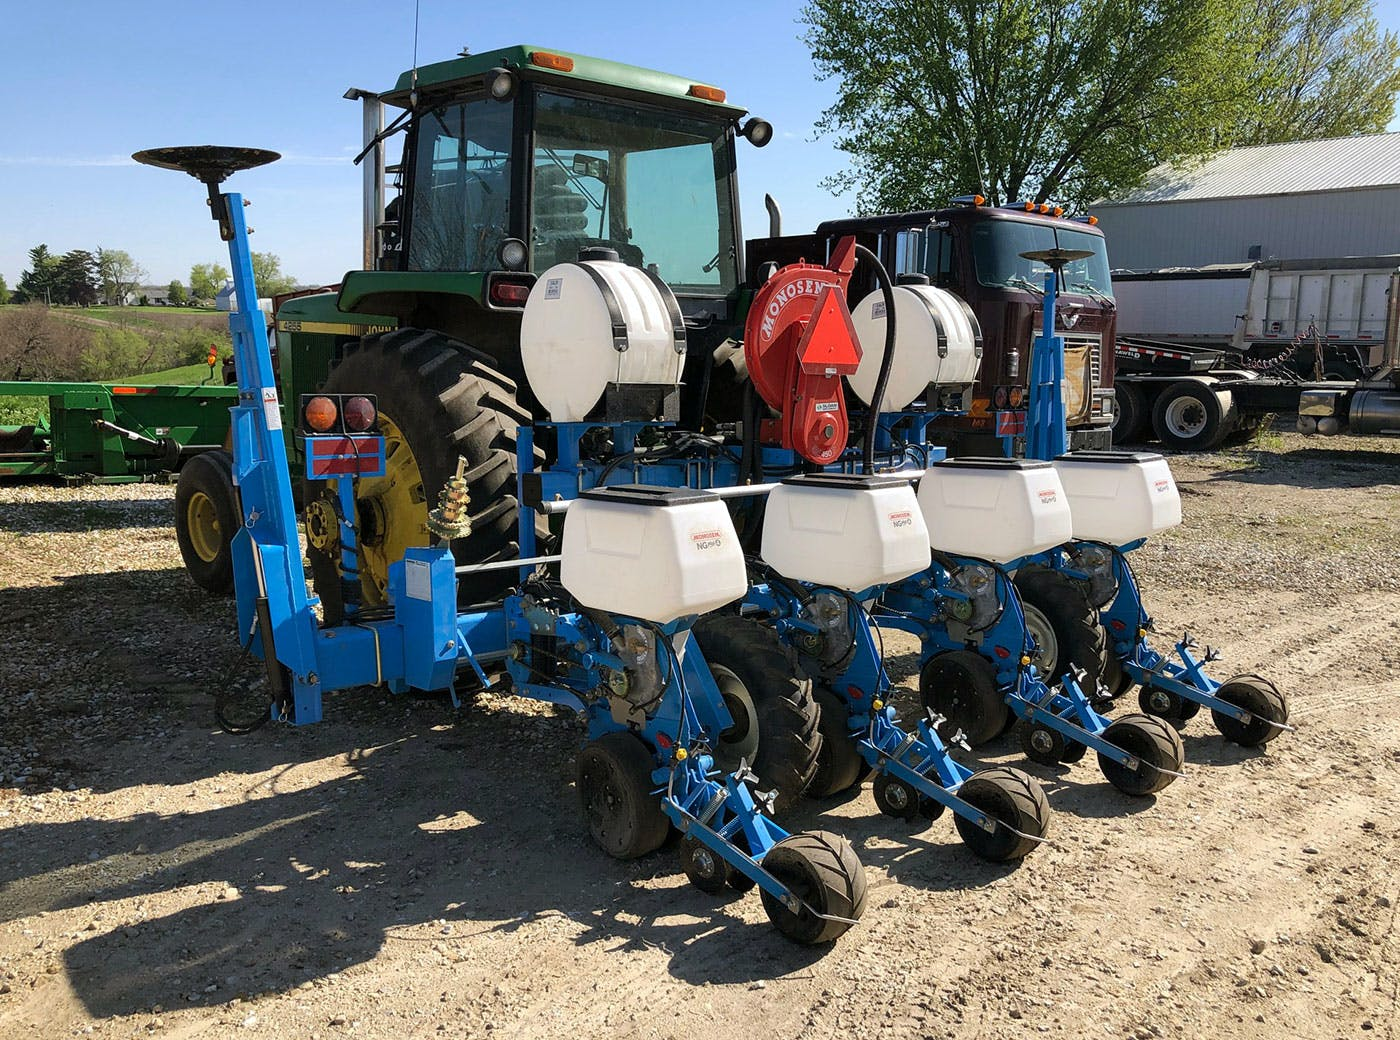 American Hemp Research planter with plates for field trial plots as well as production